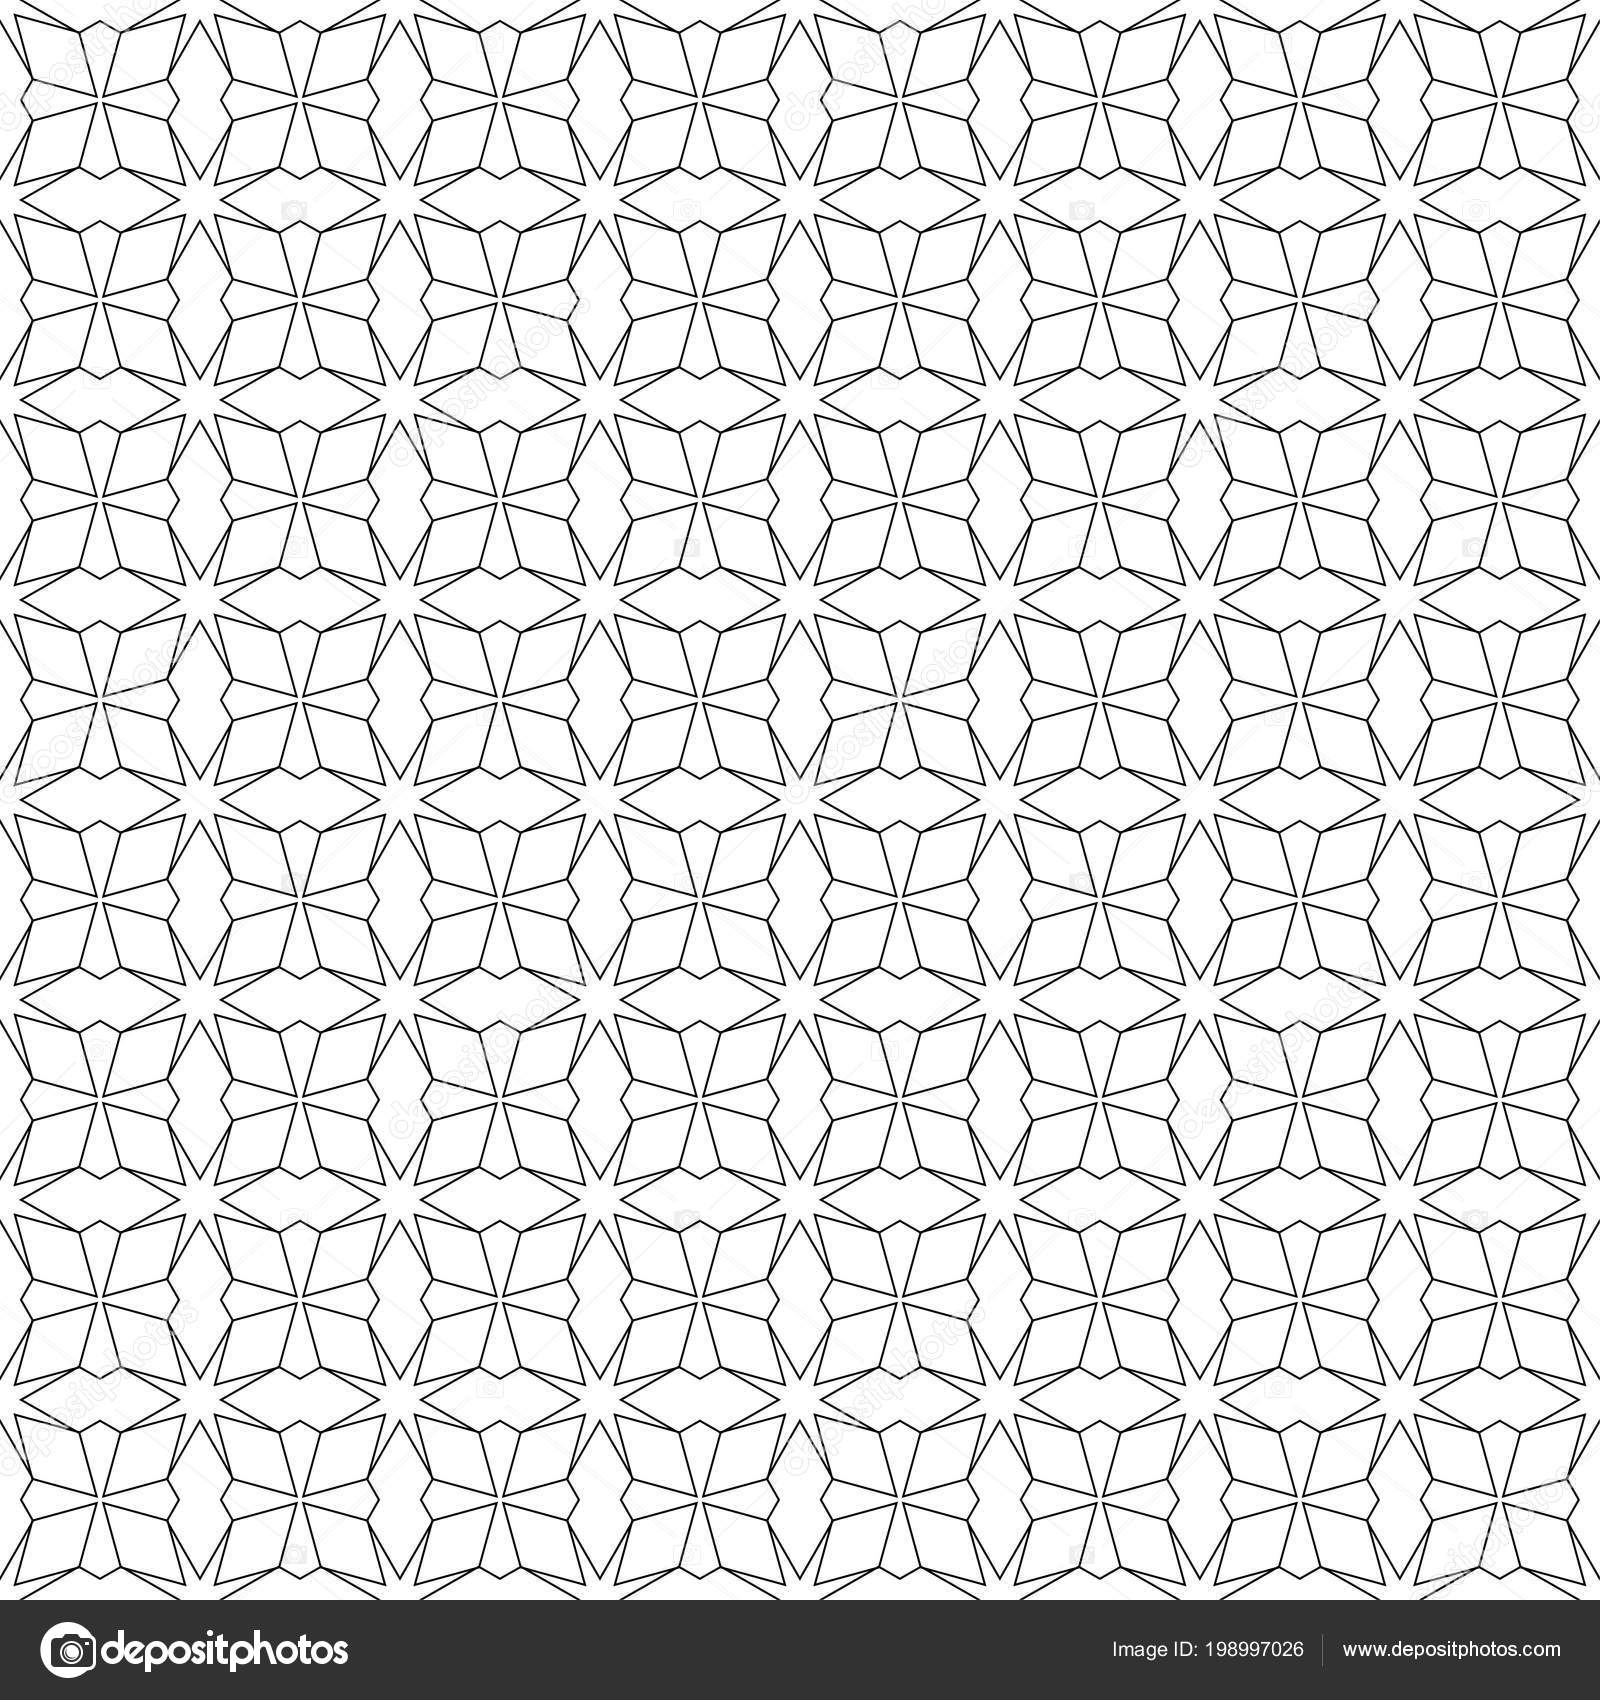 Black On White Seamless Pattern For Web, Textile And Wallpapers